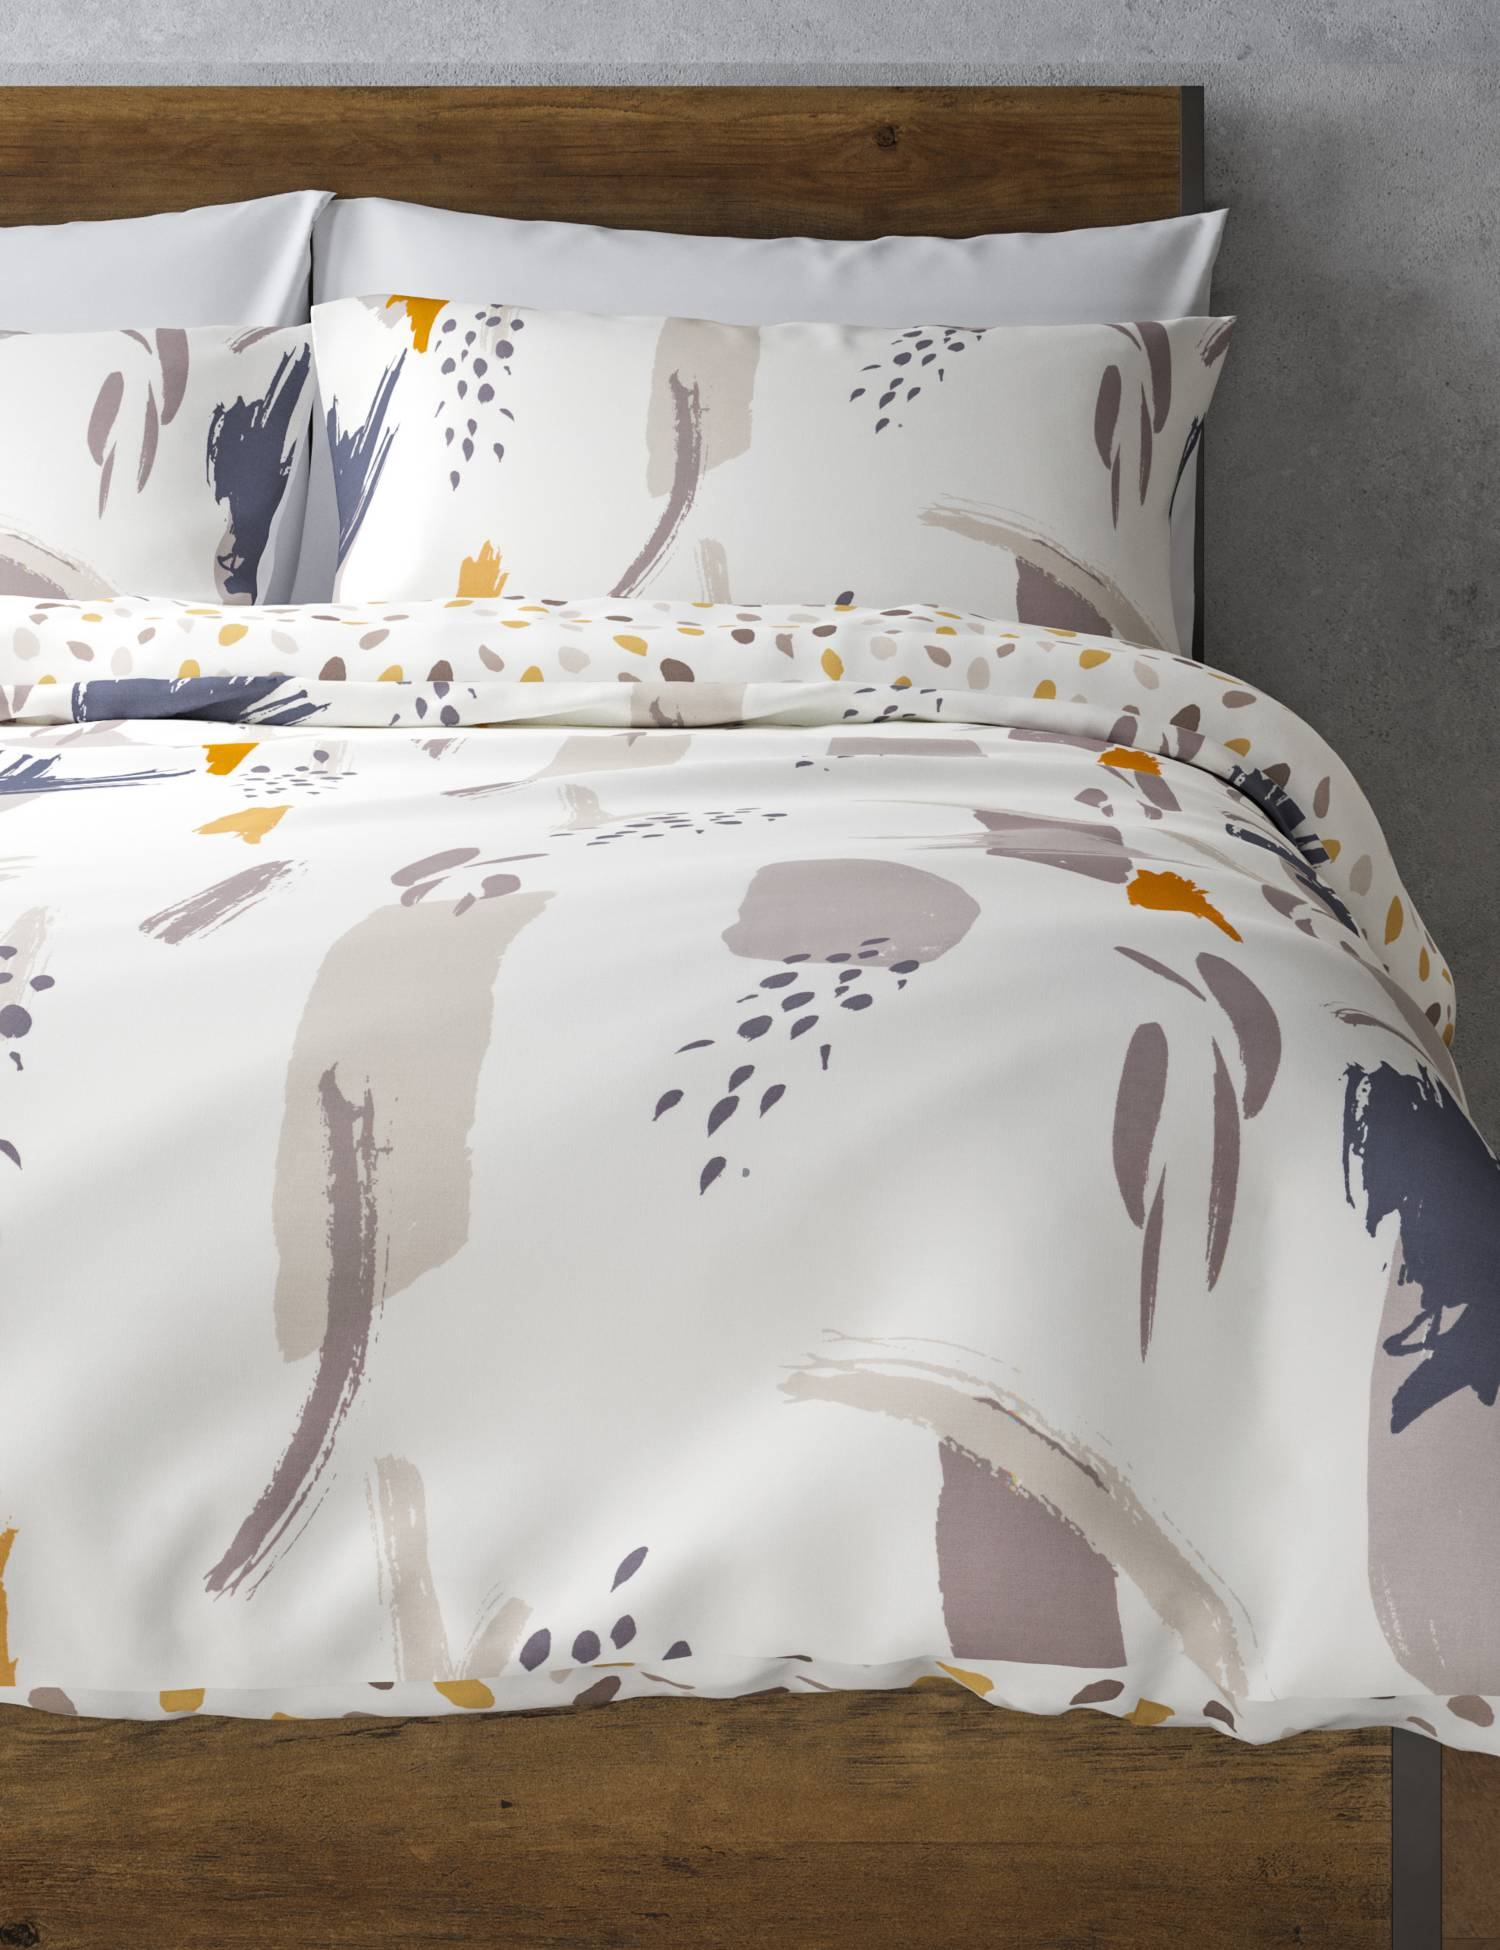 Olivia Printed Bedding Set from £19.50 - With one pillowcase and a duvet cover in the single set and two pillowcases and a duvet cover in other sizes, you'll have everything you need to create a complete look with this bed set.